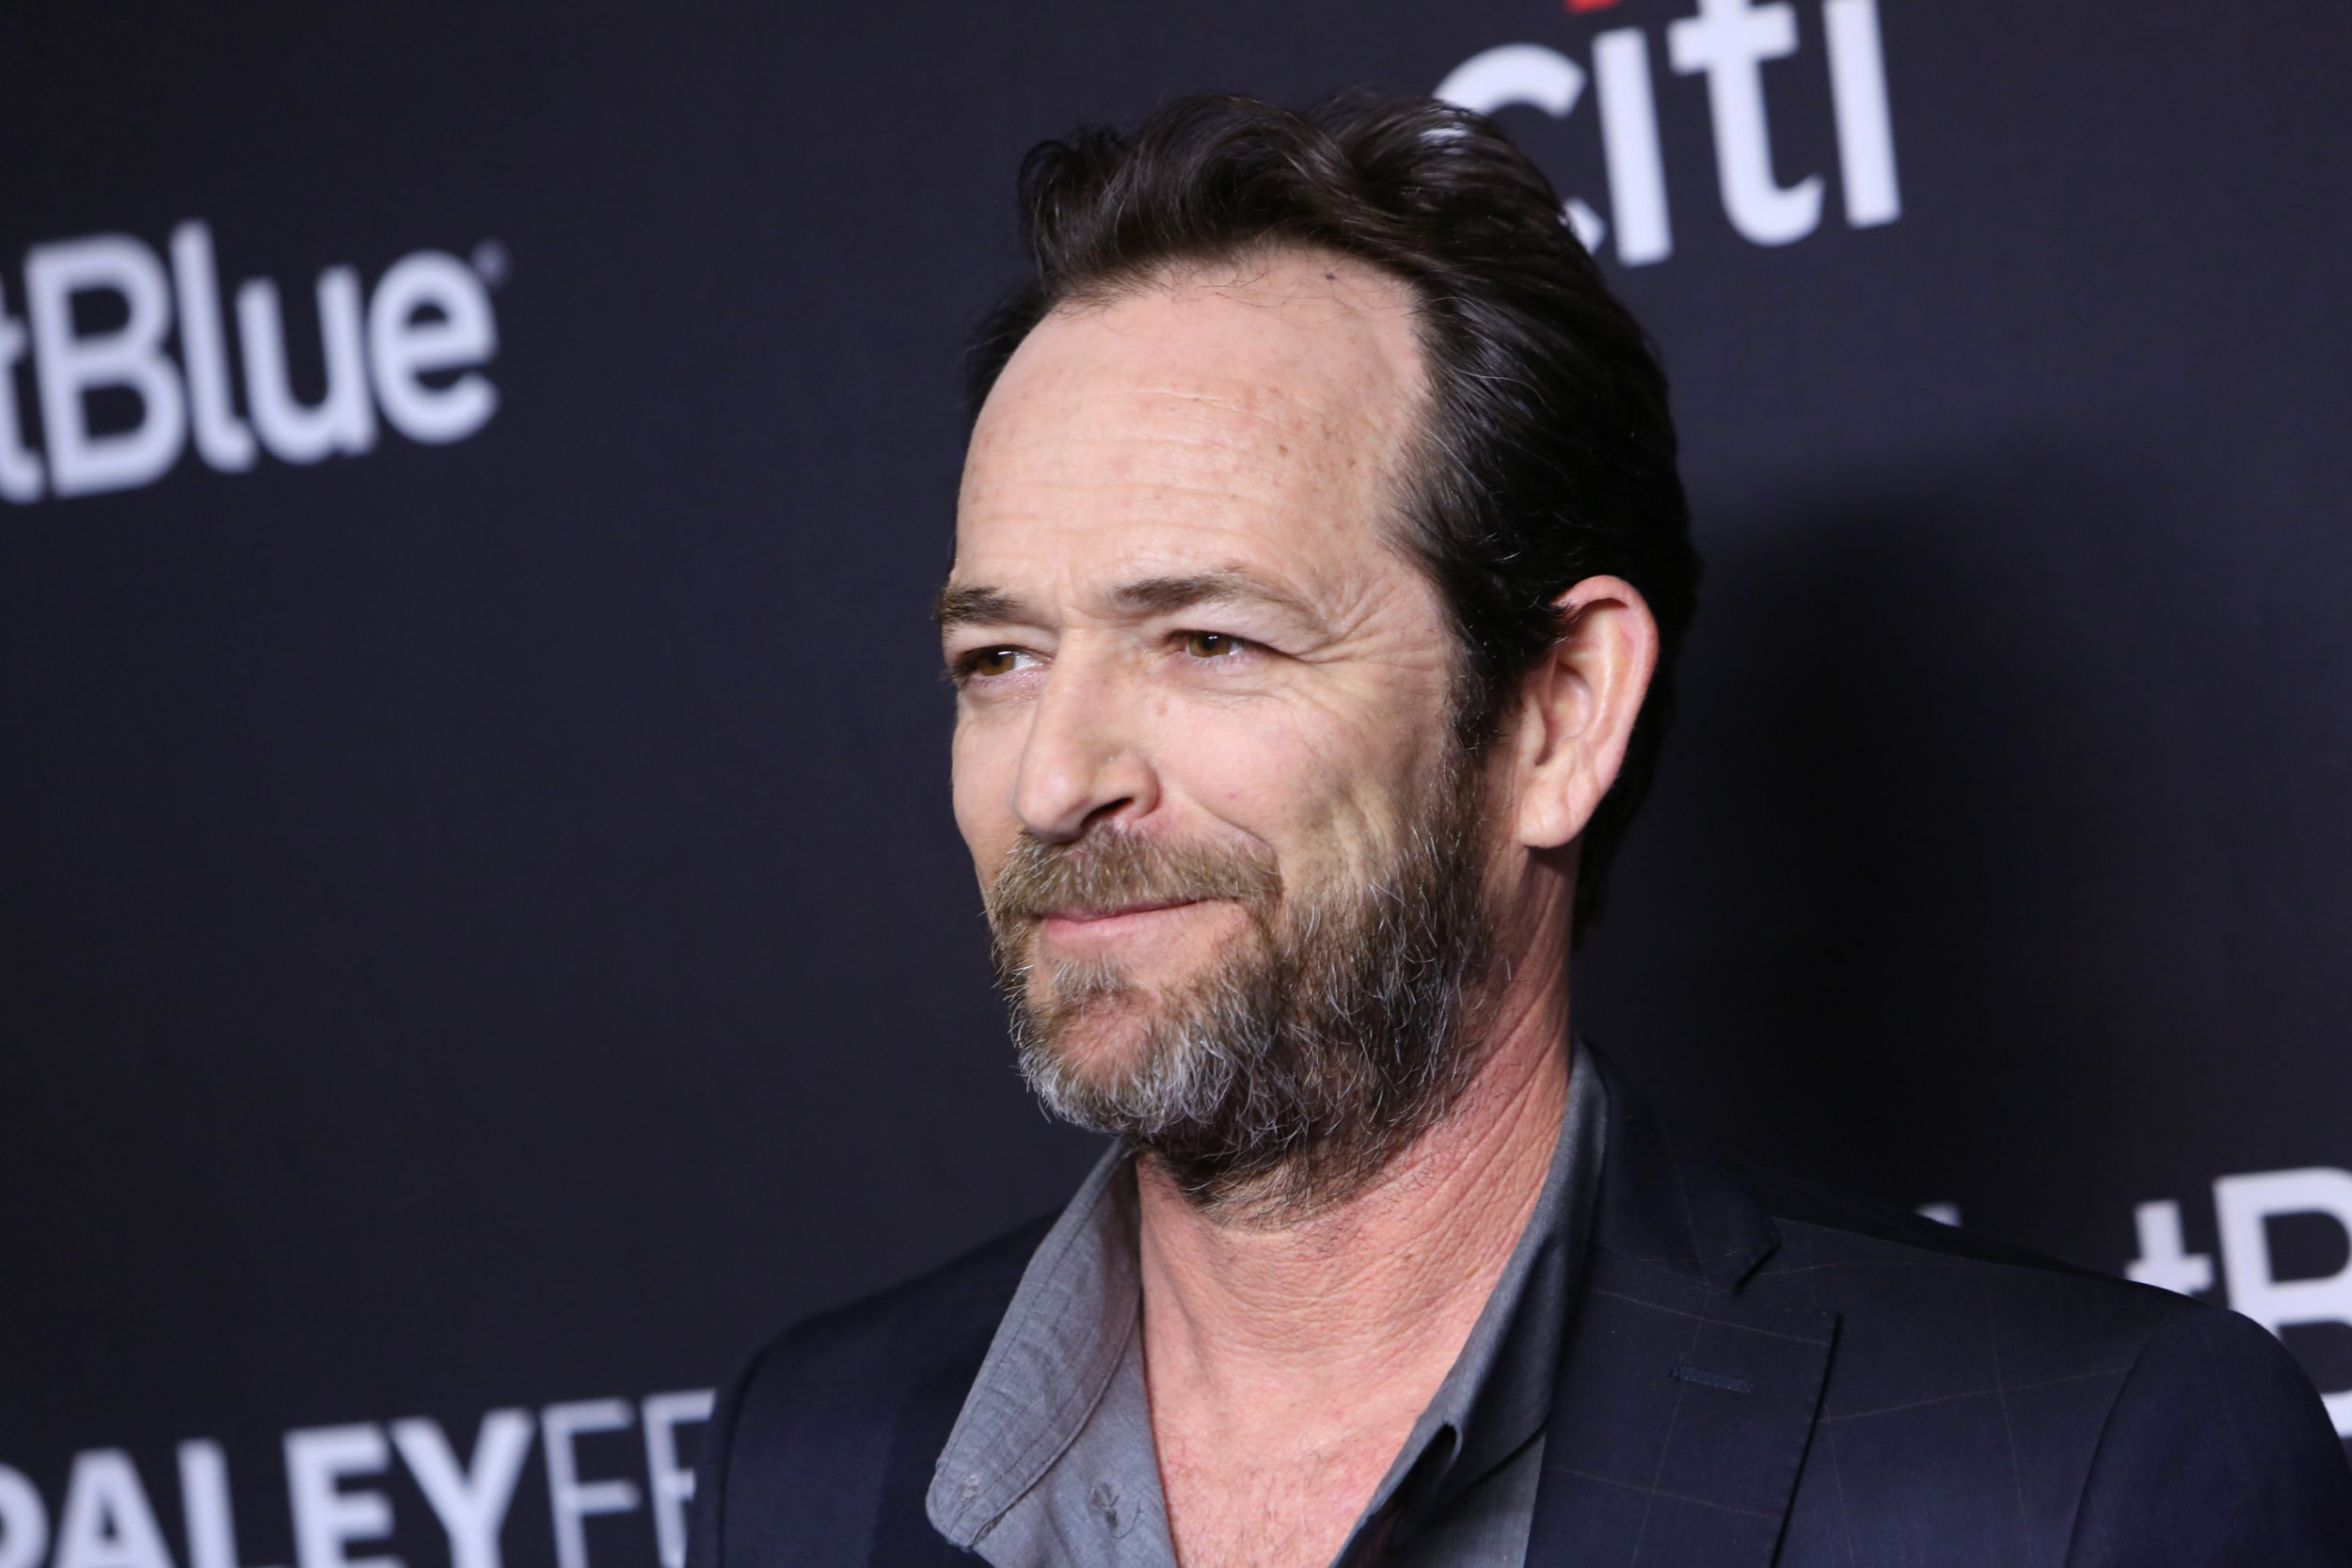 luke perry of 90210 and riverdale fame